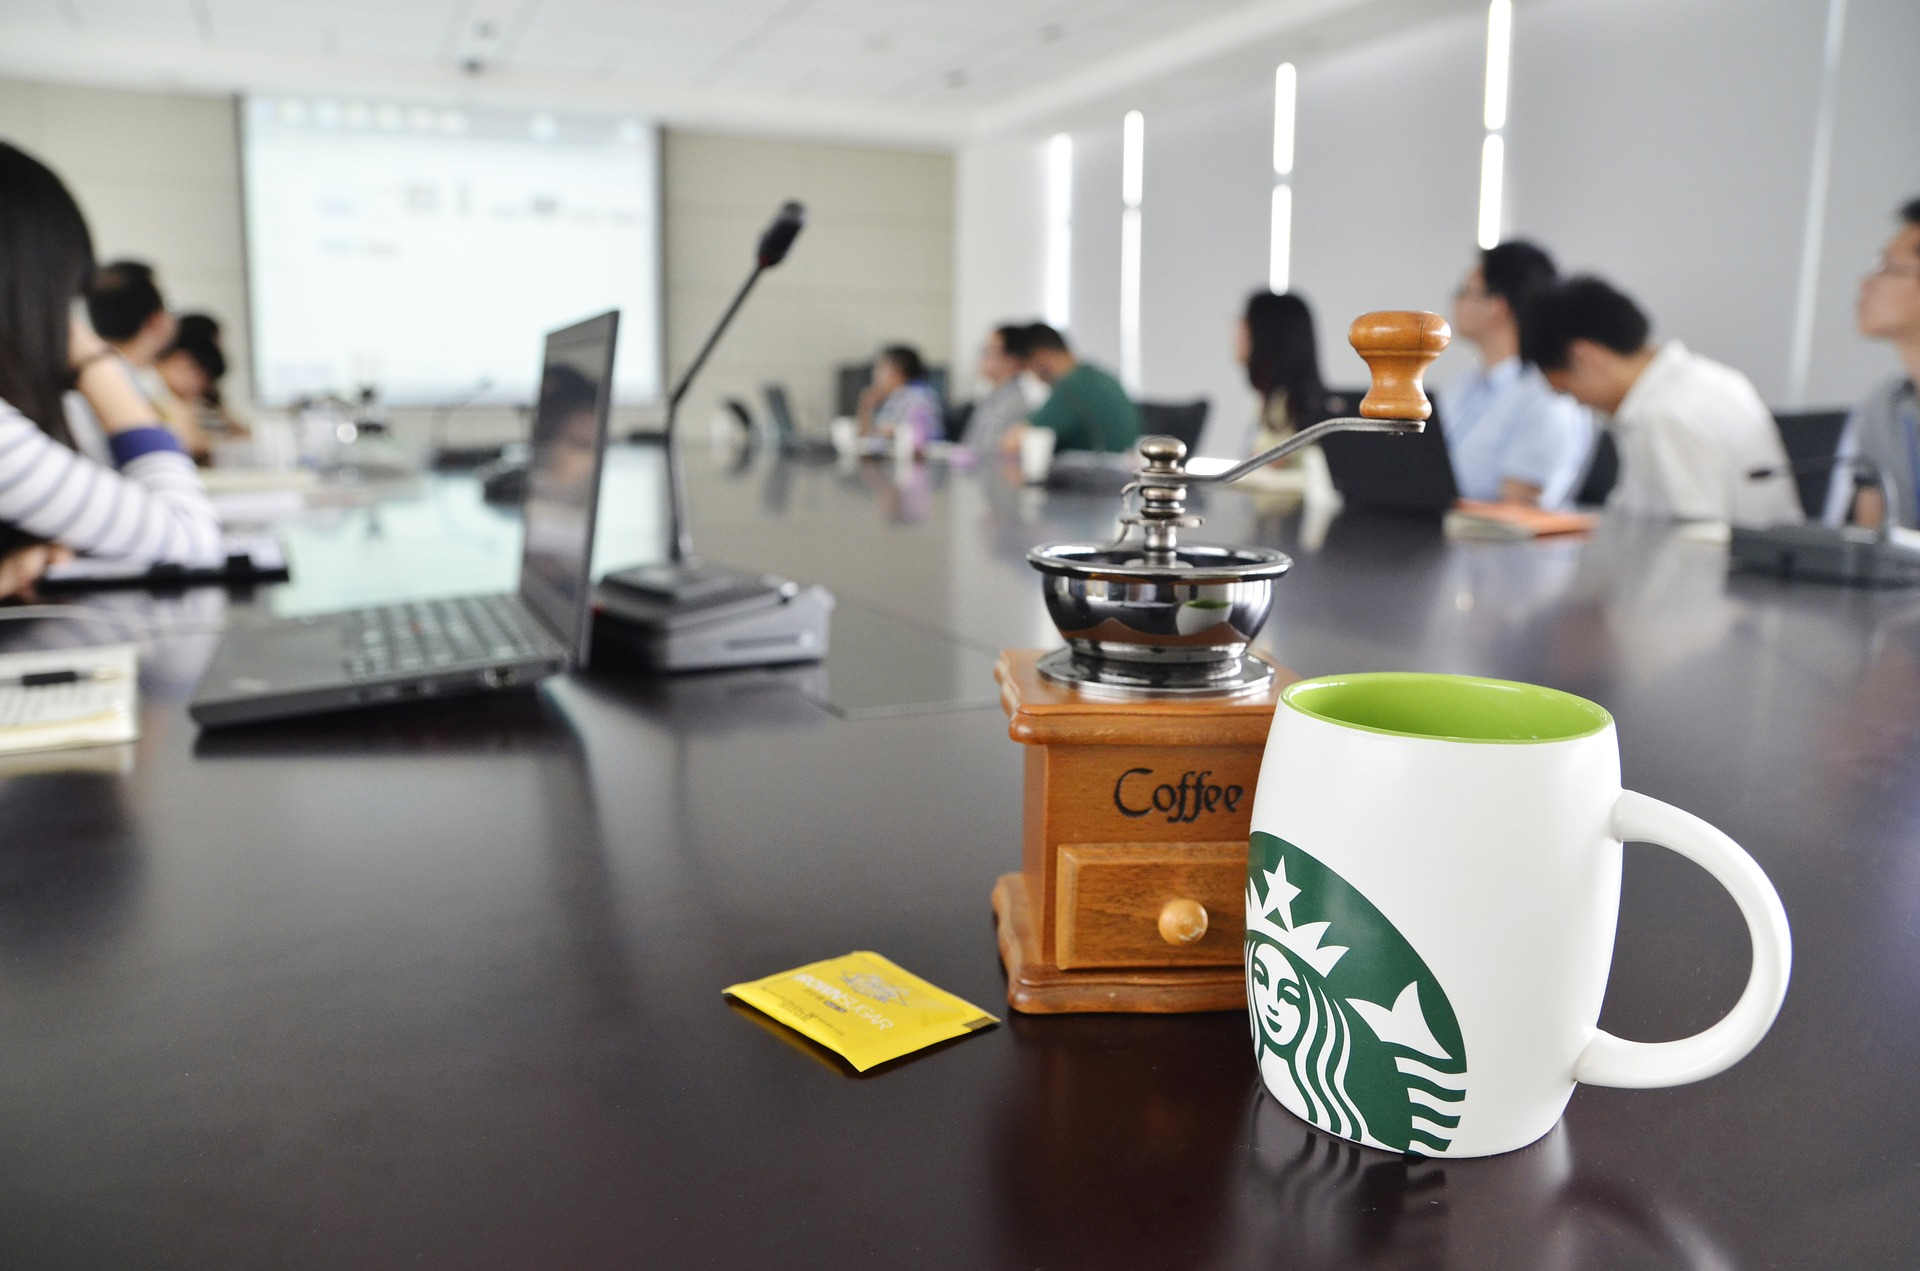 drinking-starbucks-in-a-conference-room